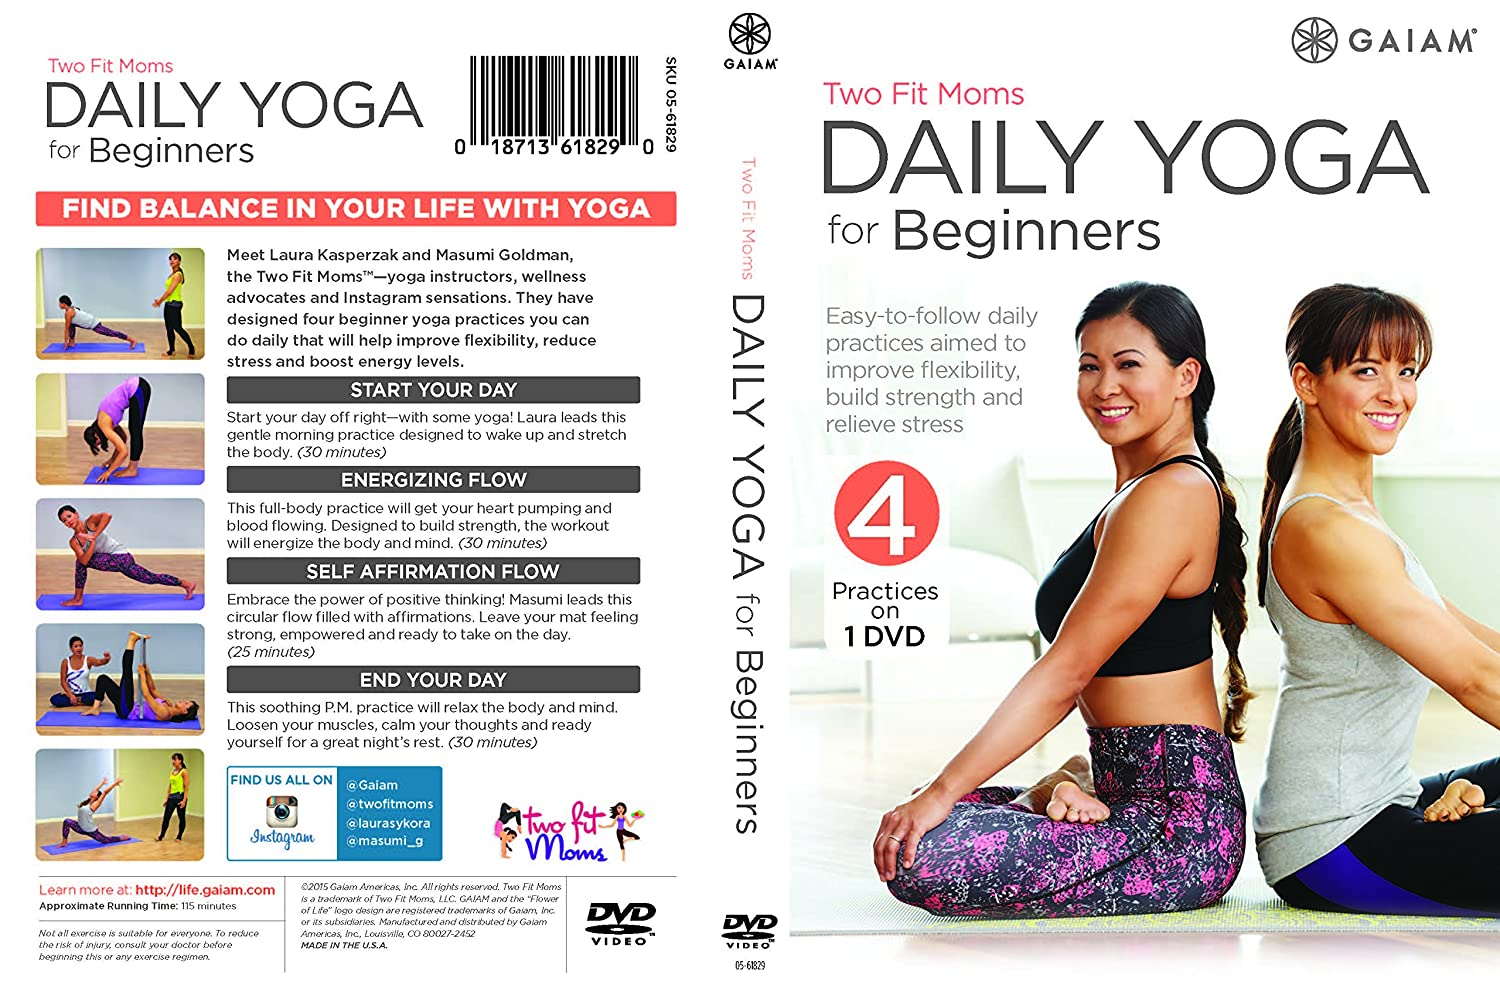 Two Fit Moms Daily Yoga for Beginners [USA] [DVD]: Amazon.es ...